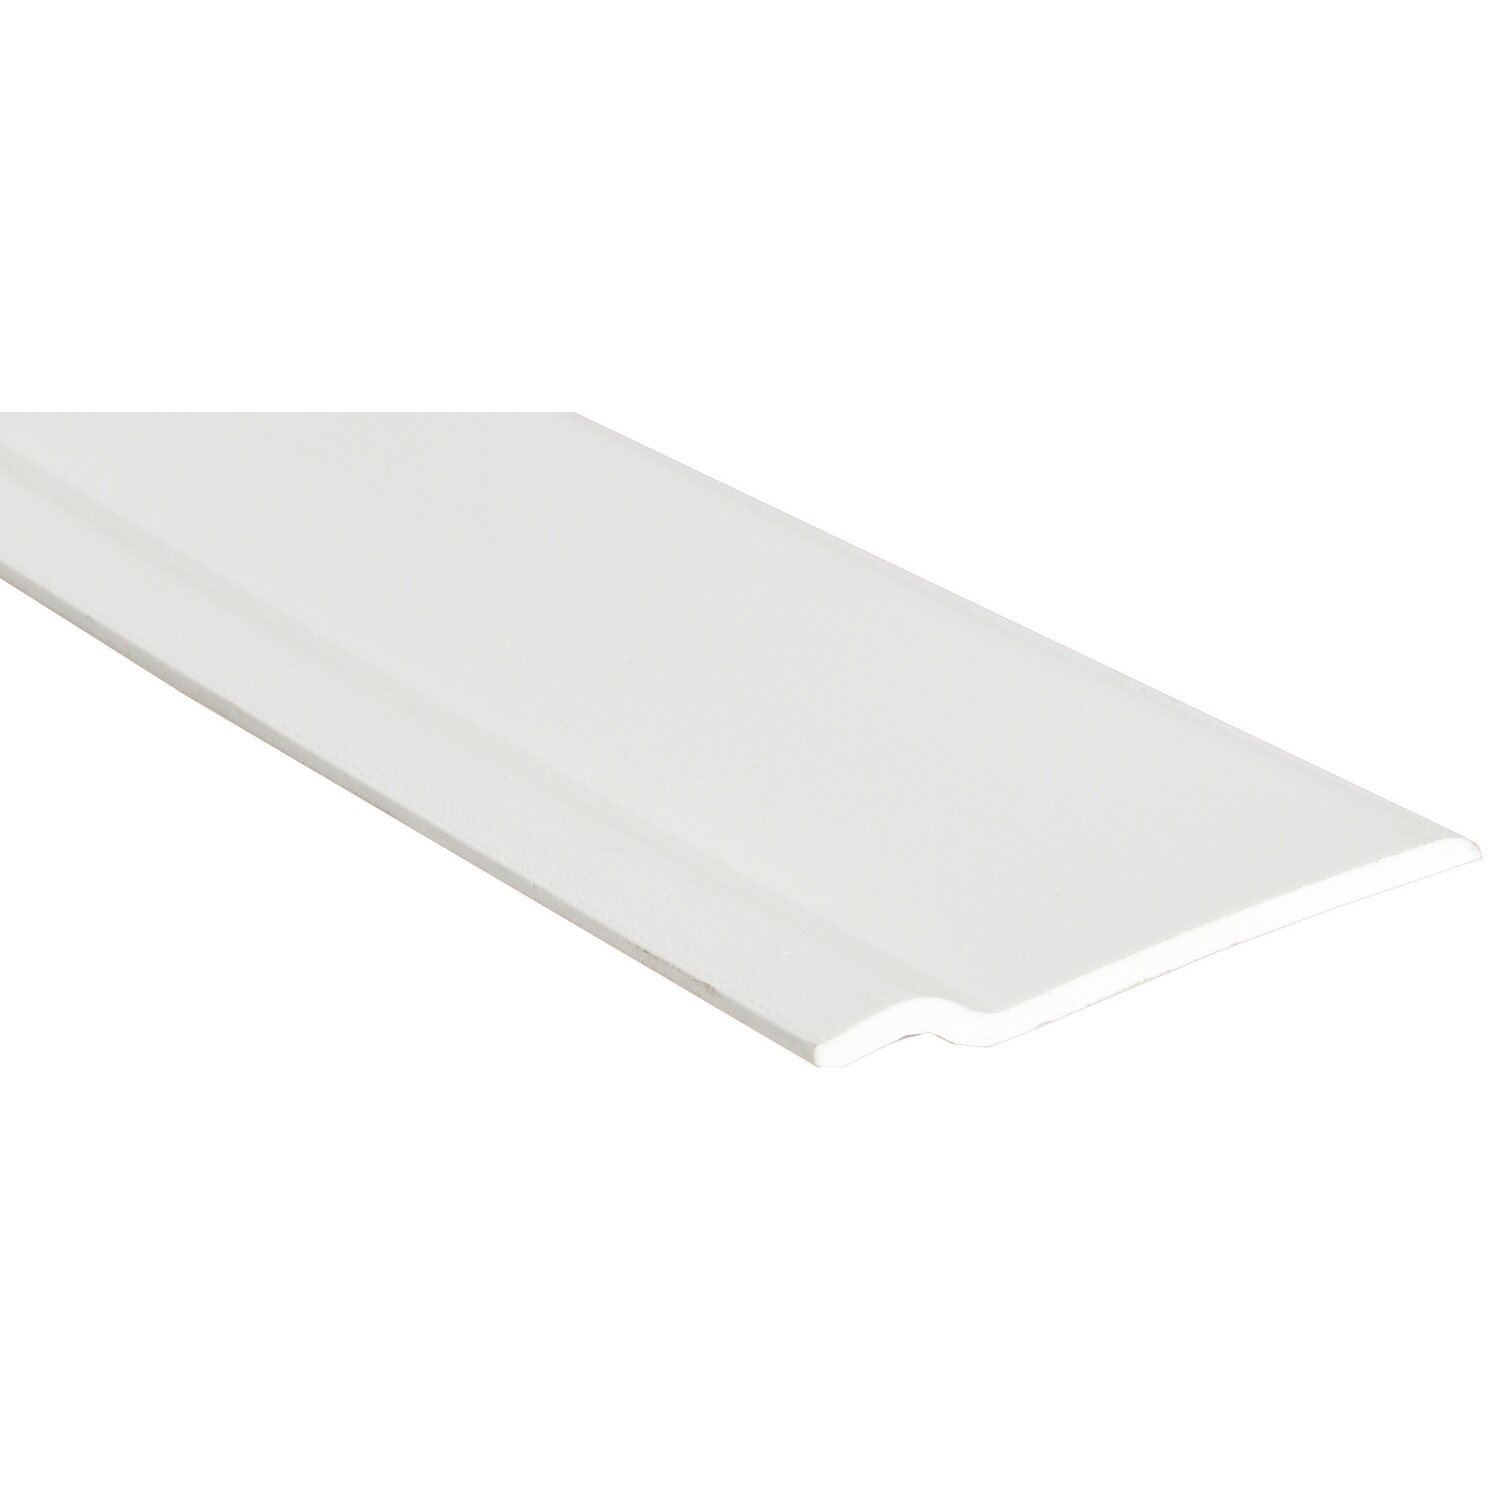 Battiscopa in pvc bianco 7 cm acquista da obi for Finestre pvc obi